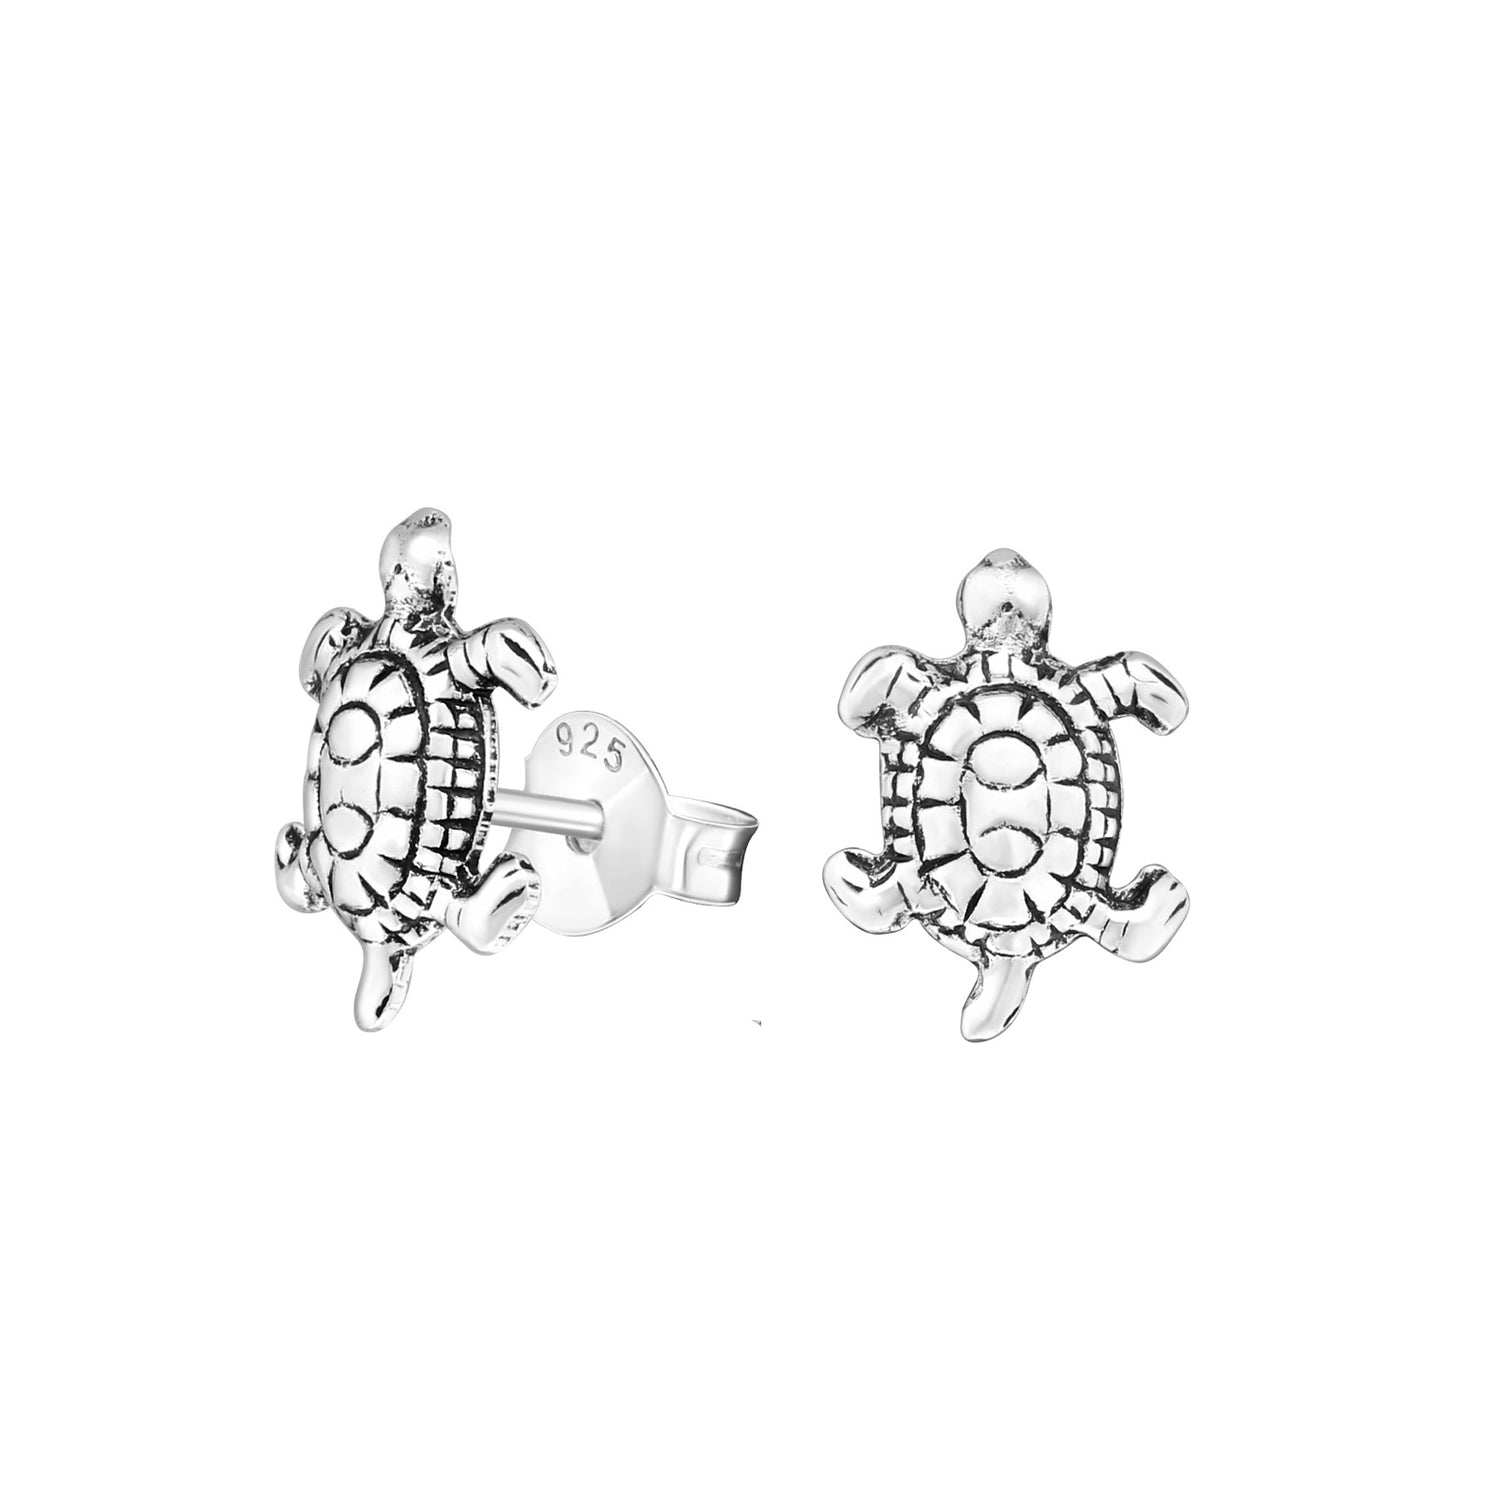 My Sea Turtle Stud Earrings